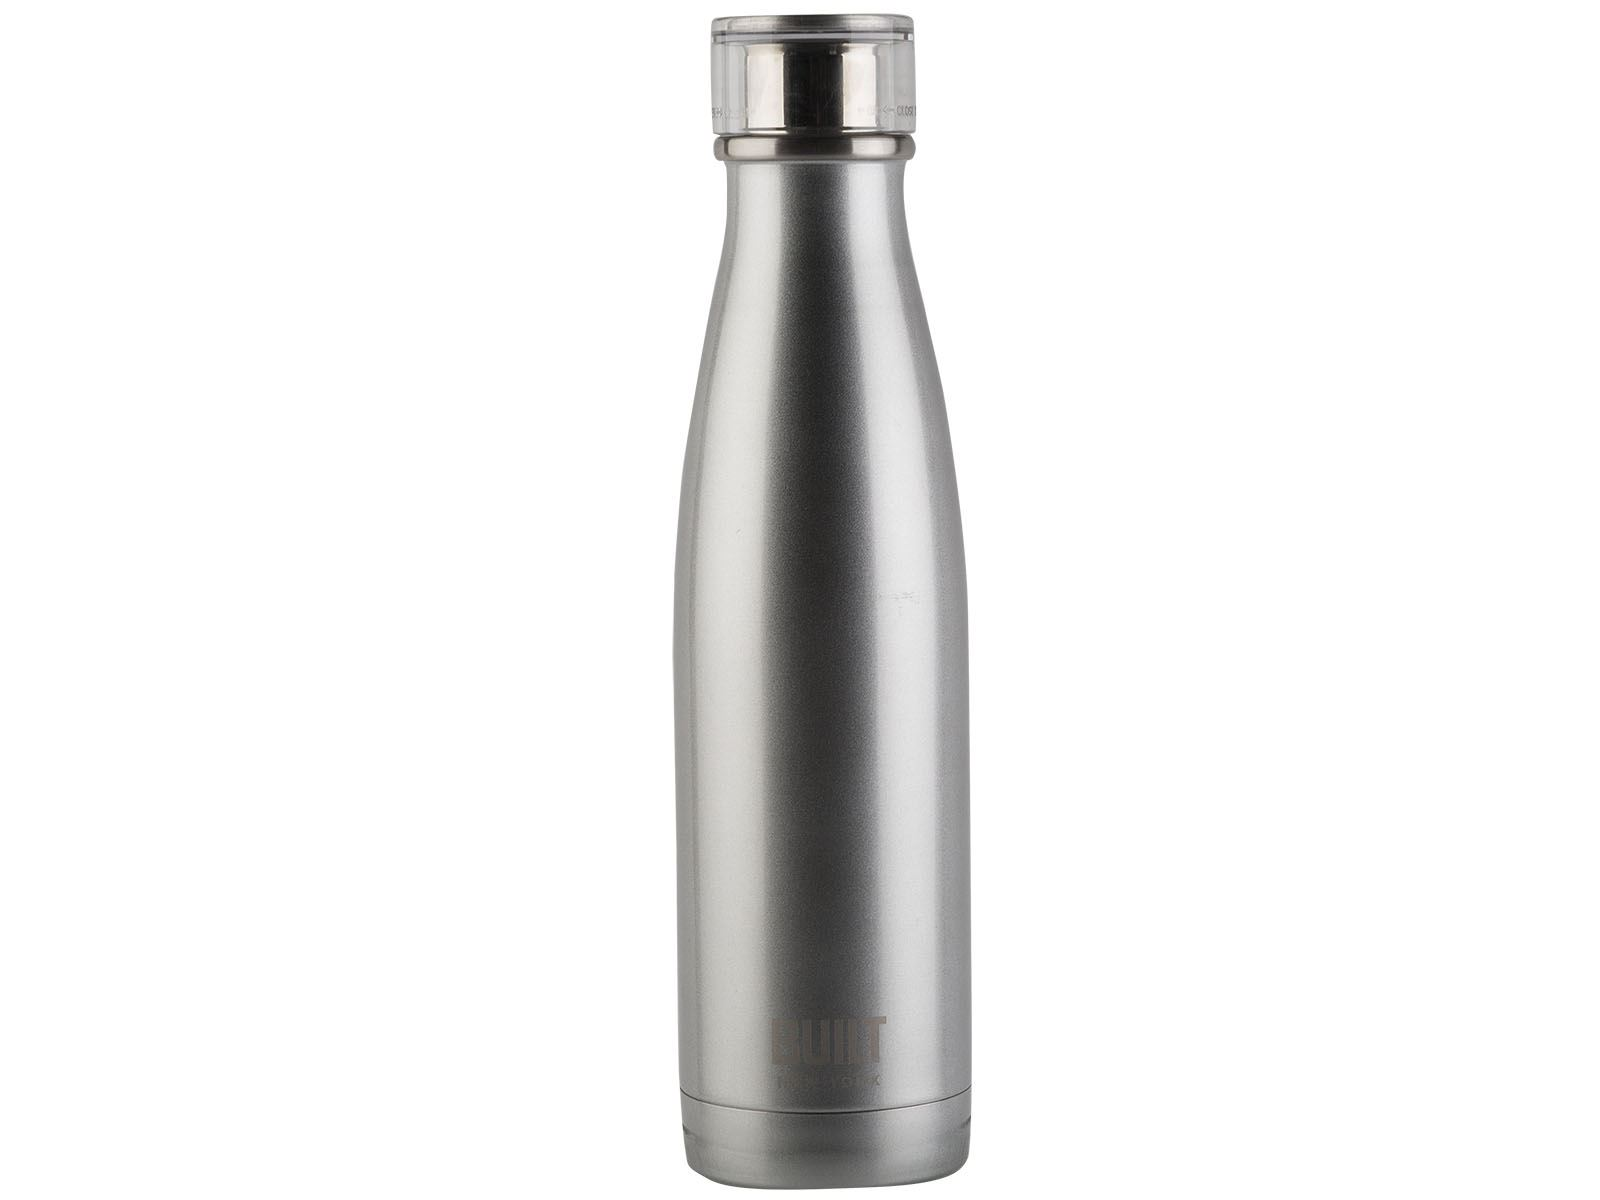 8b0b99551e Built 17oz Double Walled Stainless Steel Water Bottle Silver ...